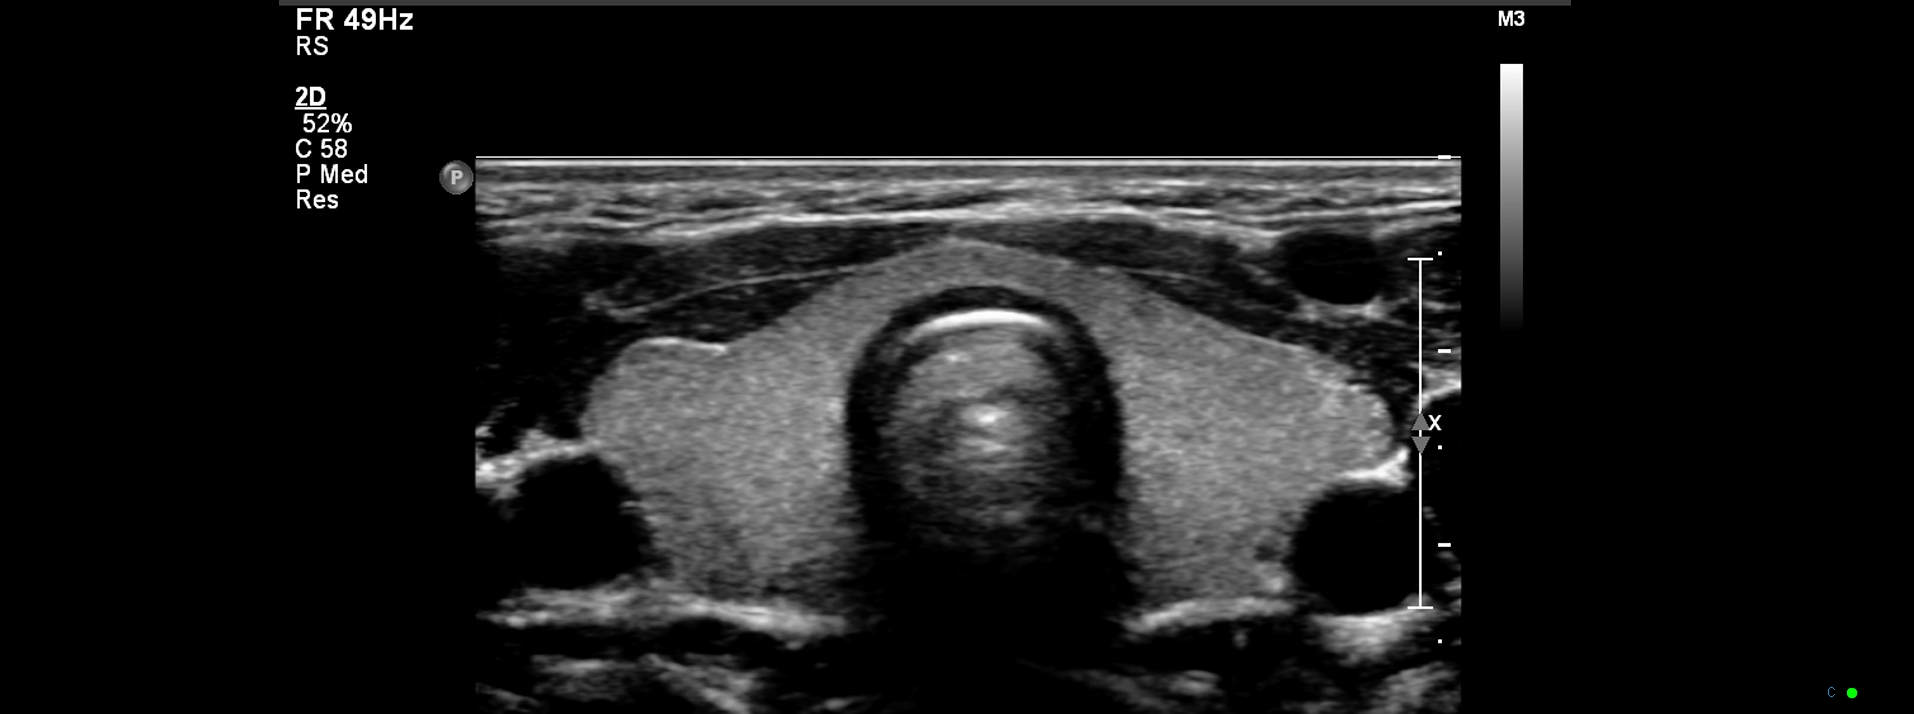 Thyroid sonography image